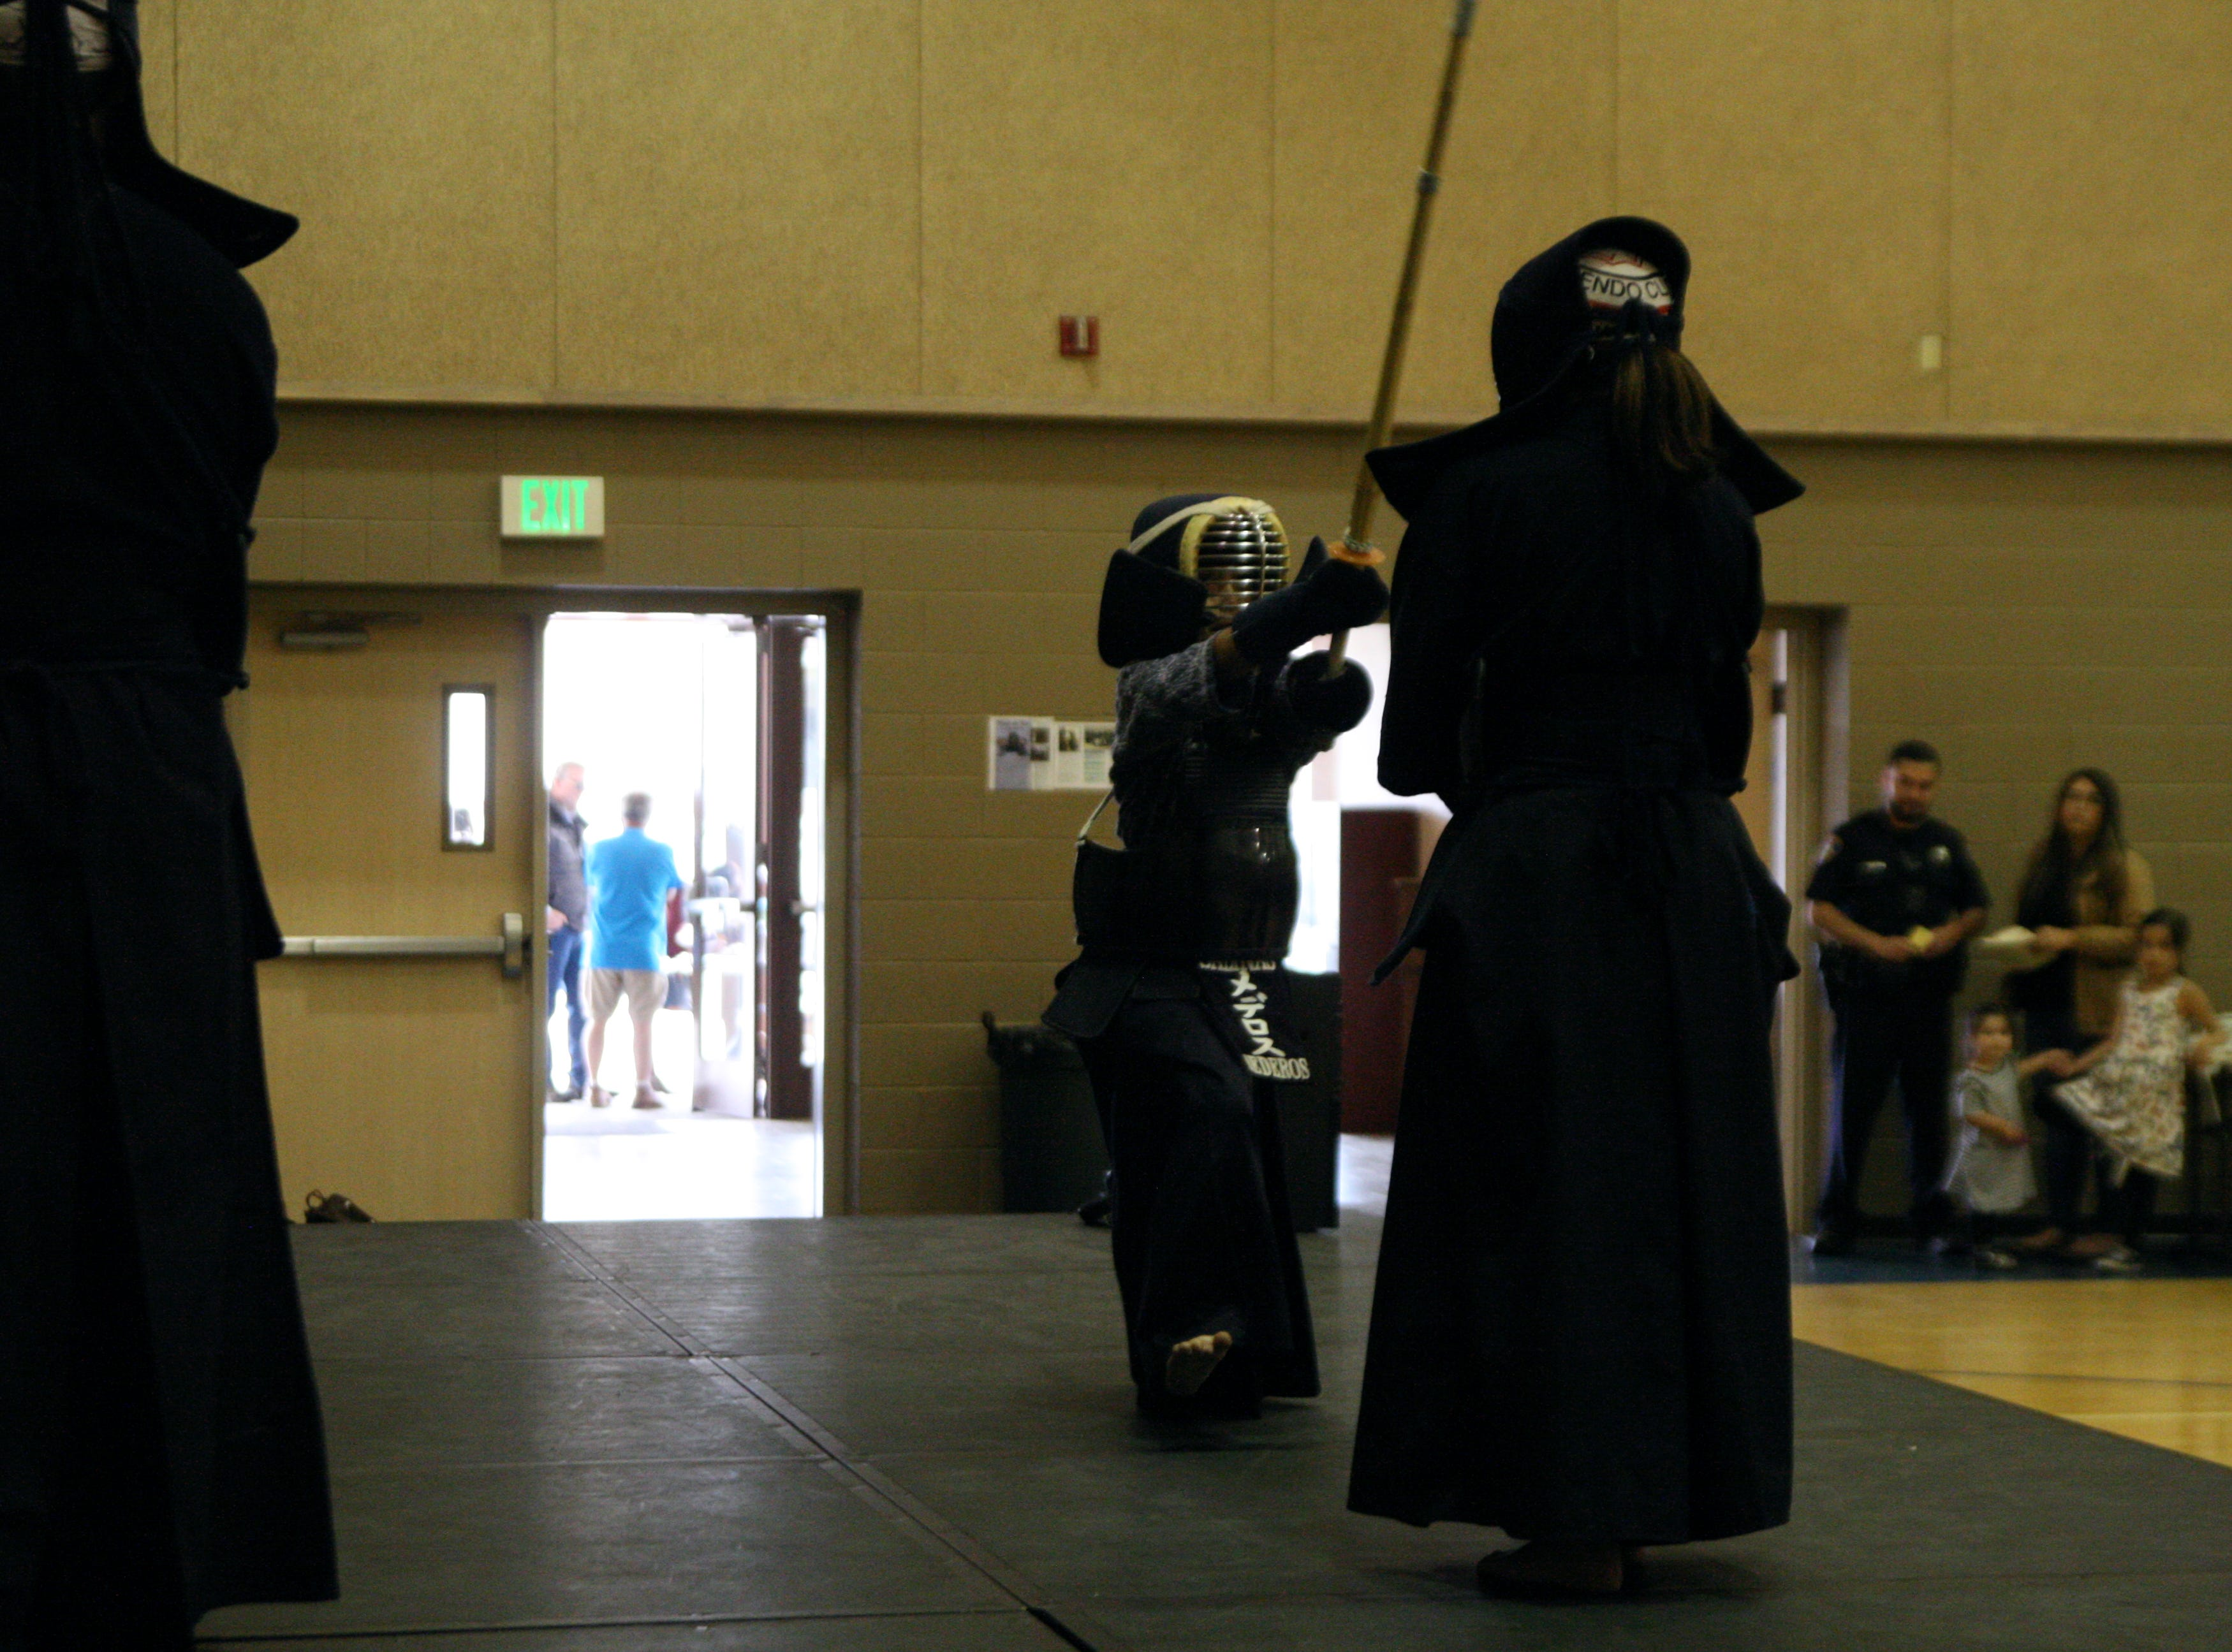 The children must earn every piece of gear they are wearing, carefully learning footwork before they are ever allowed to use the bamboo staffs in Kendo. April 27, 2019.